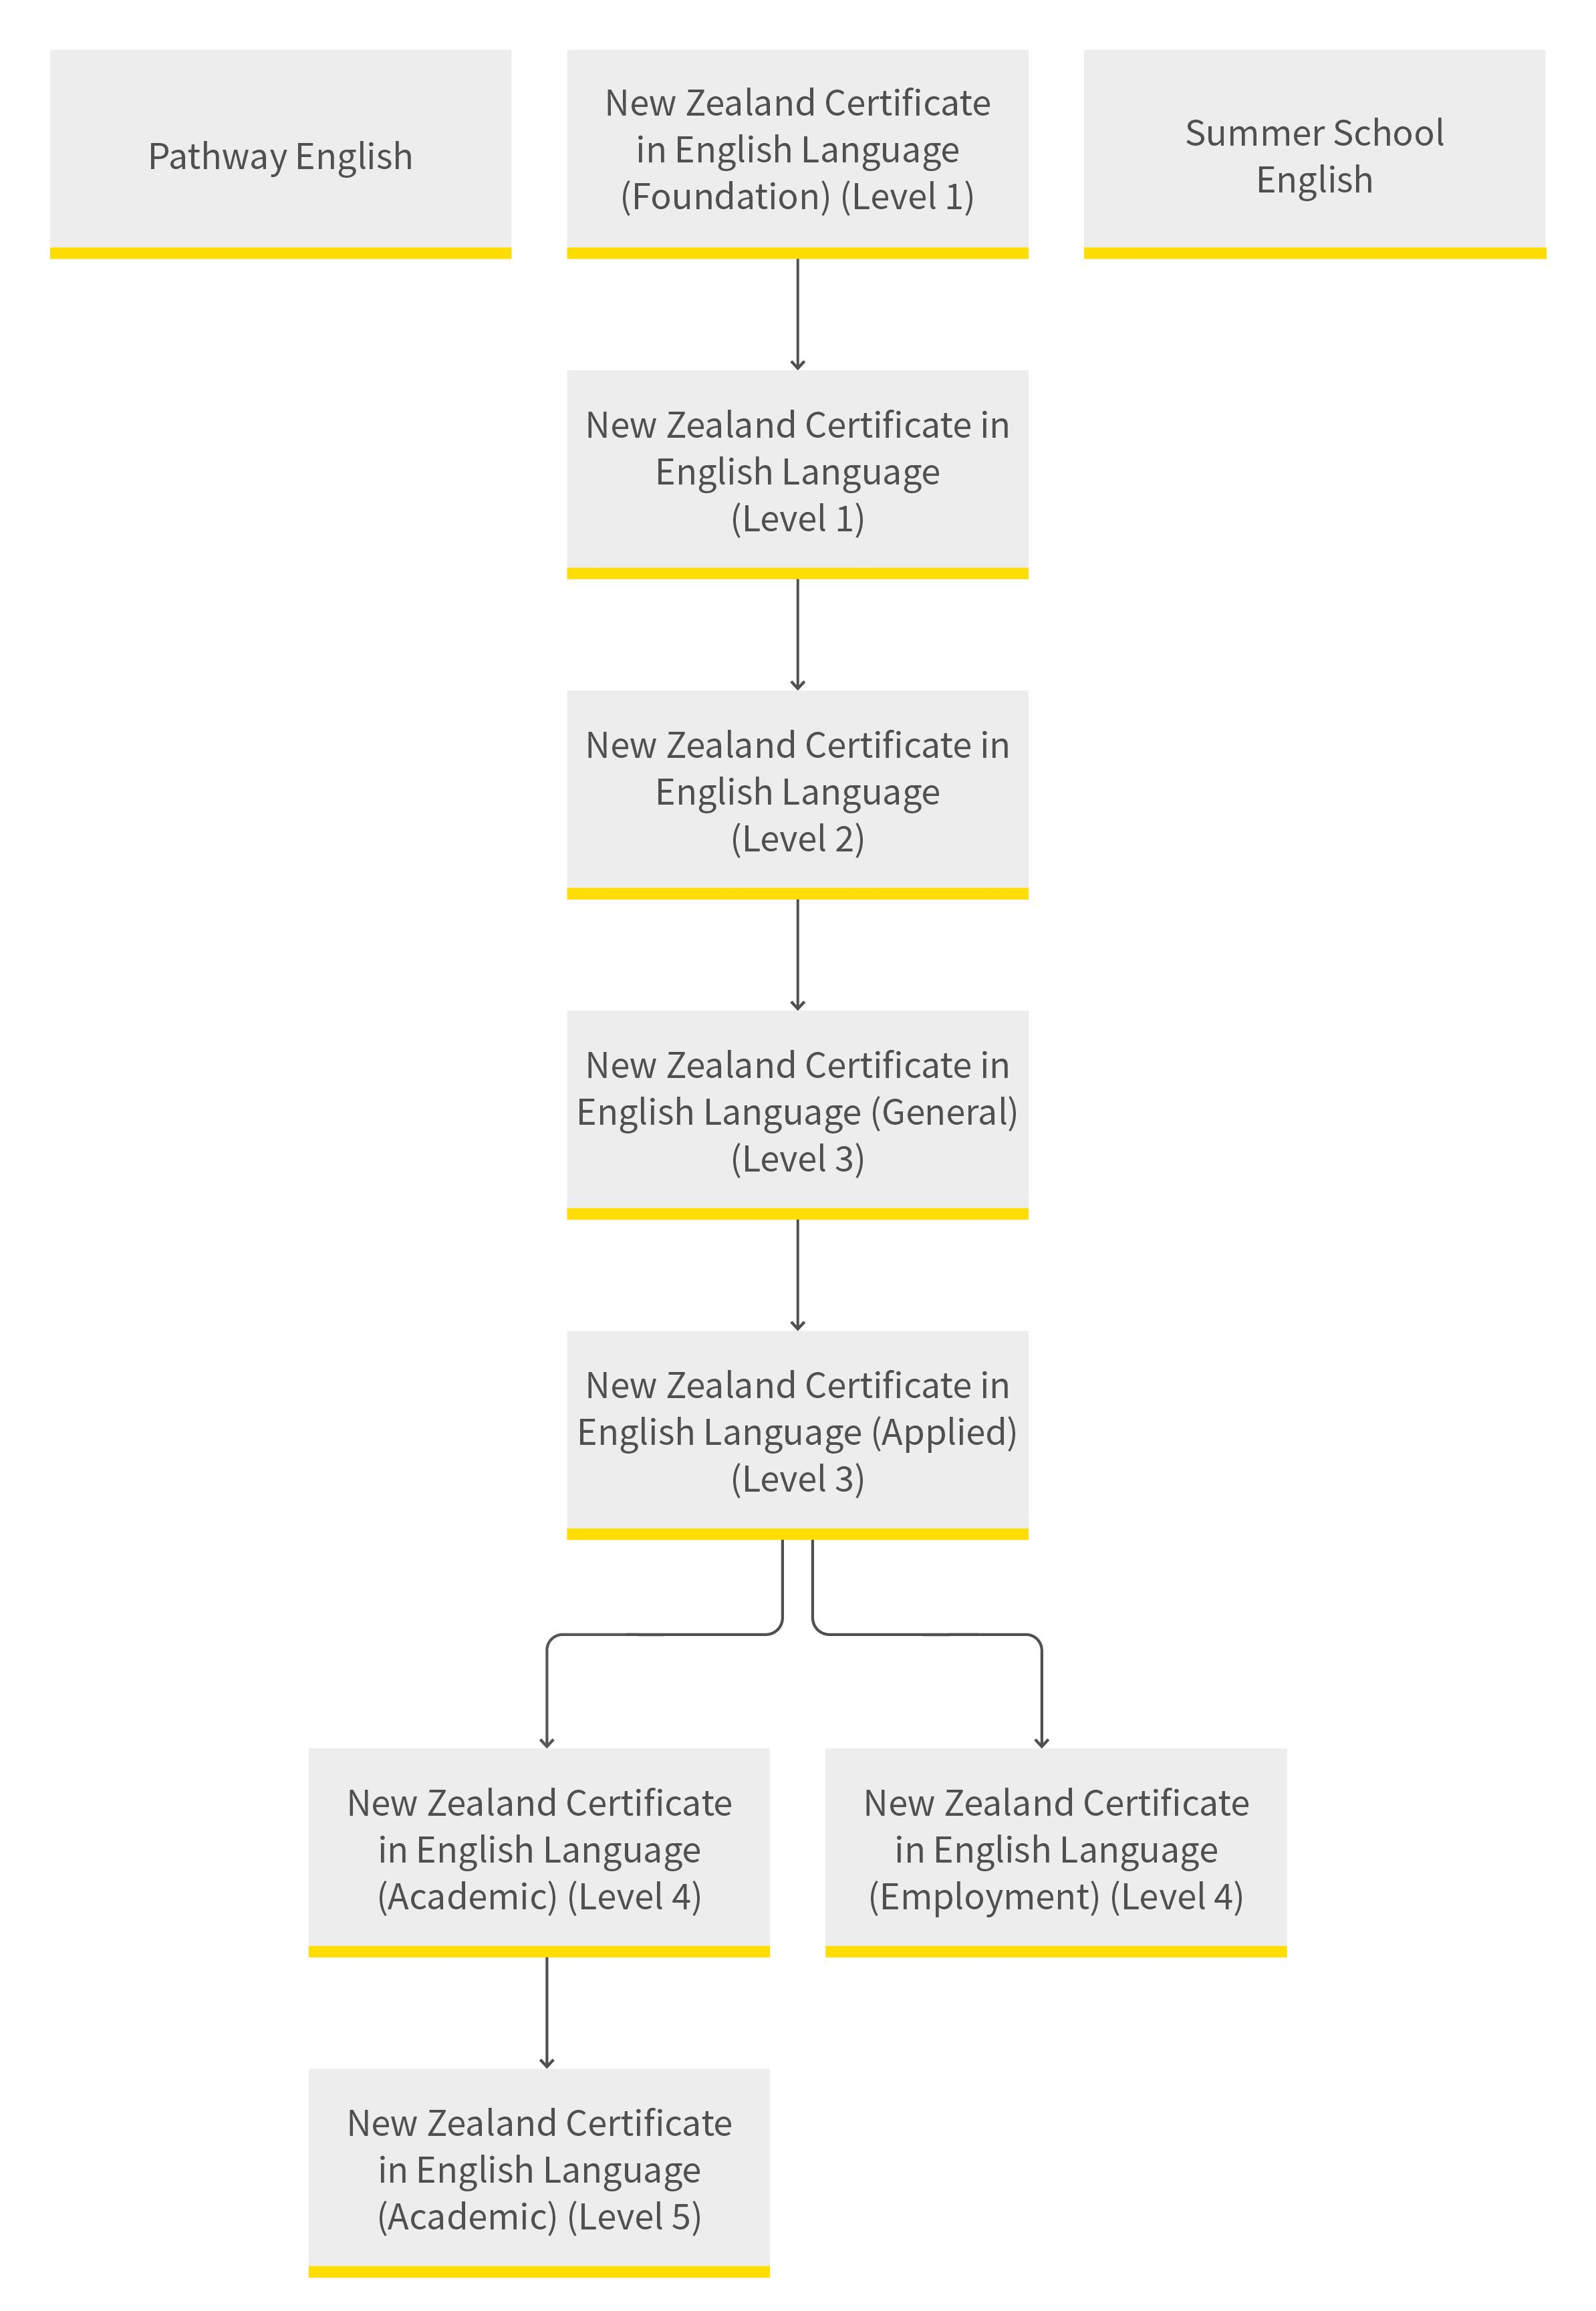 English language pathway diagram